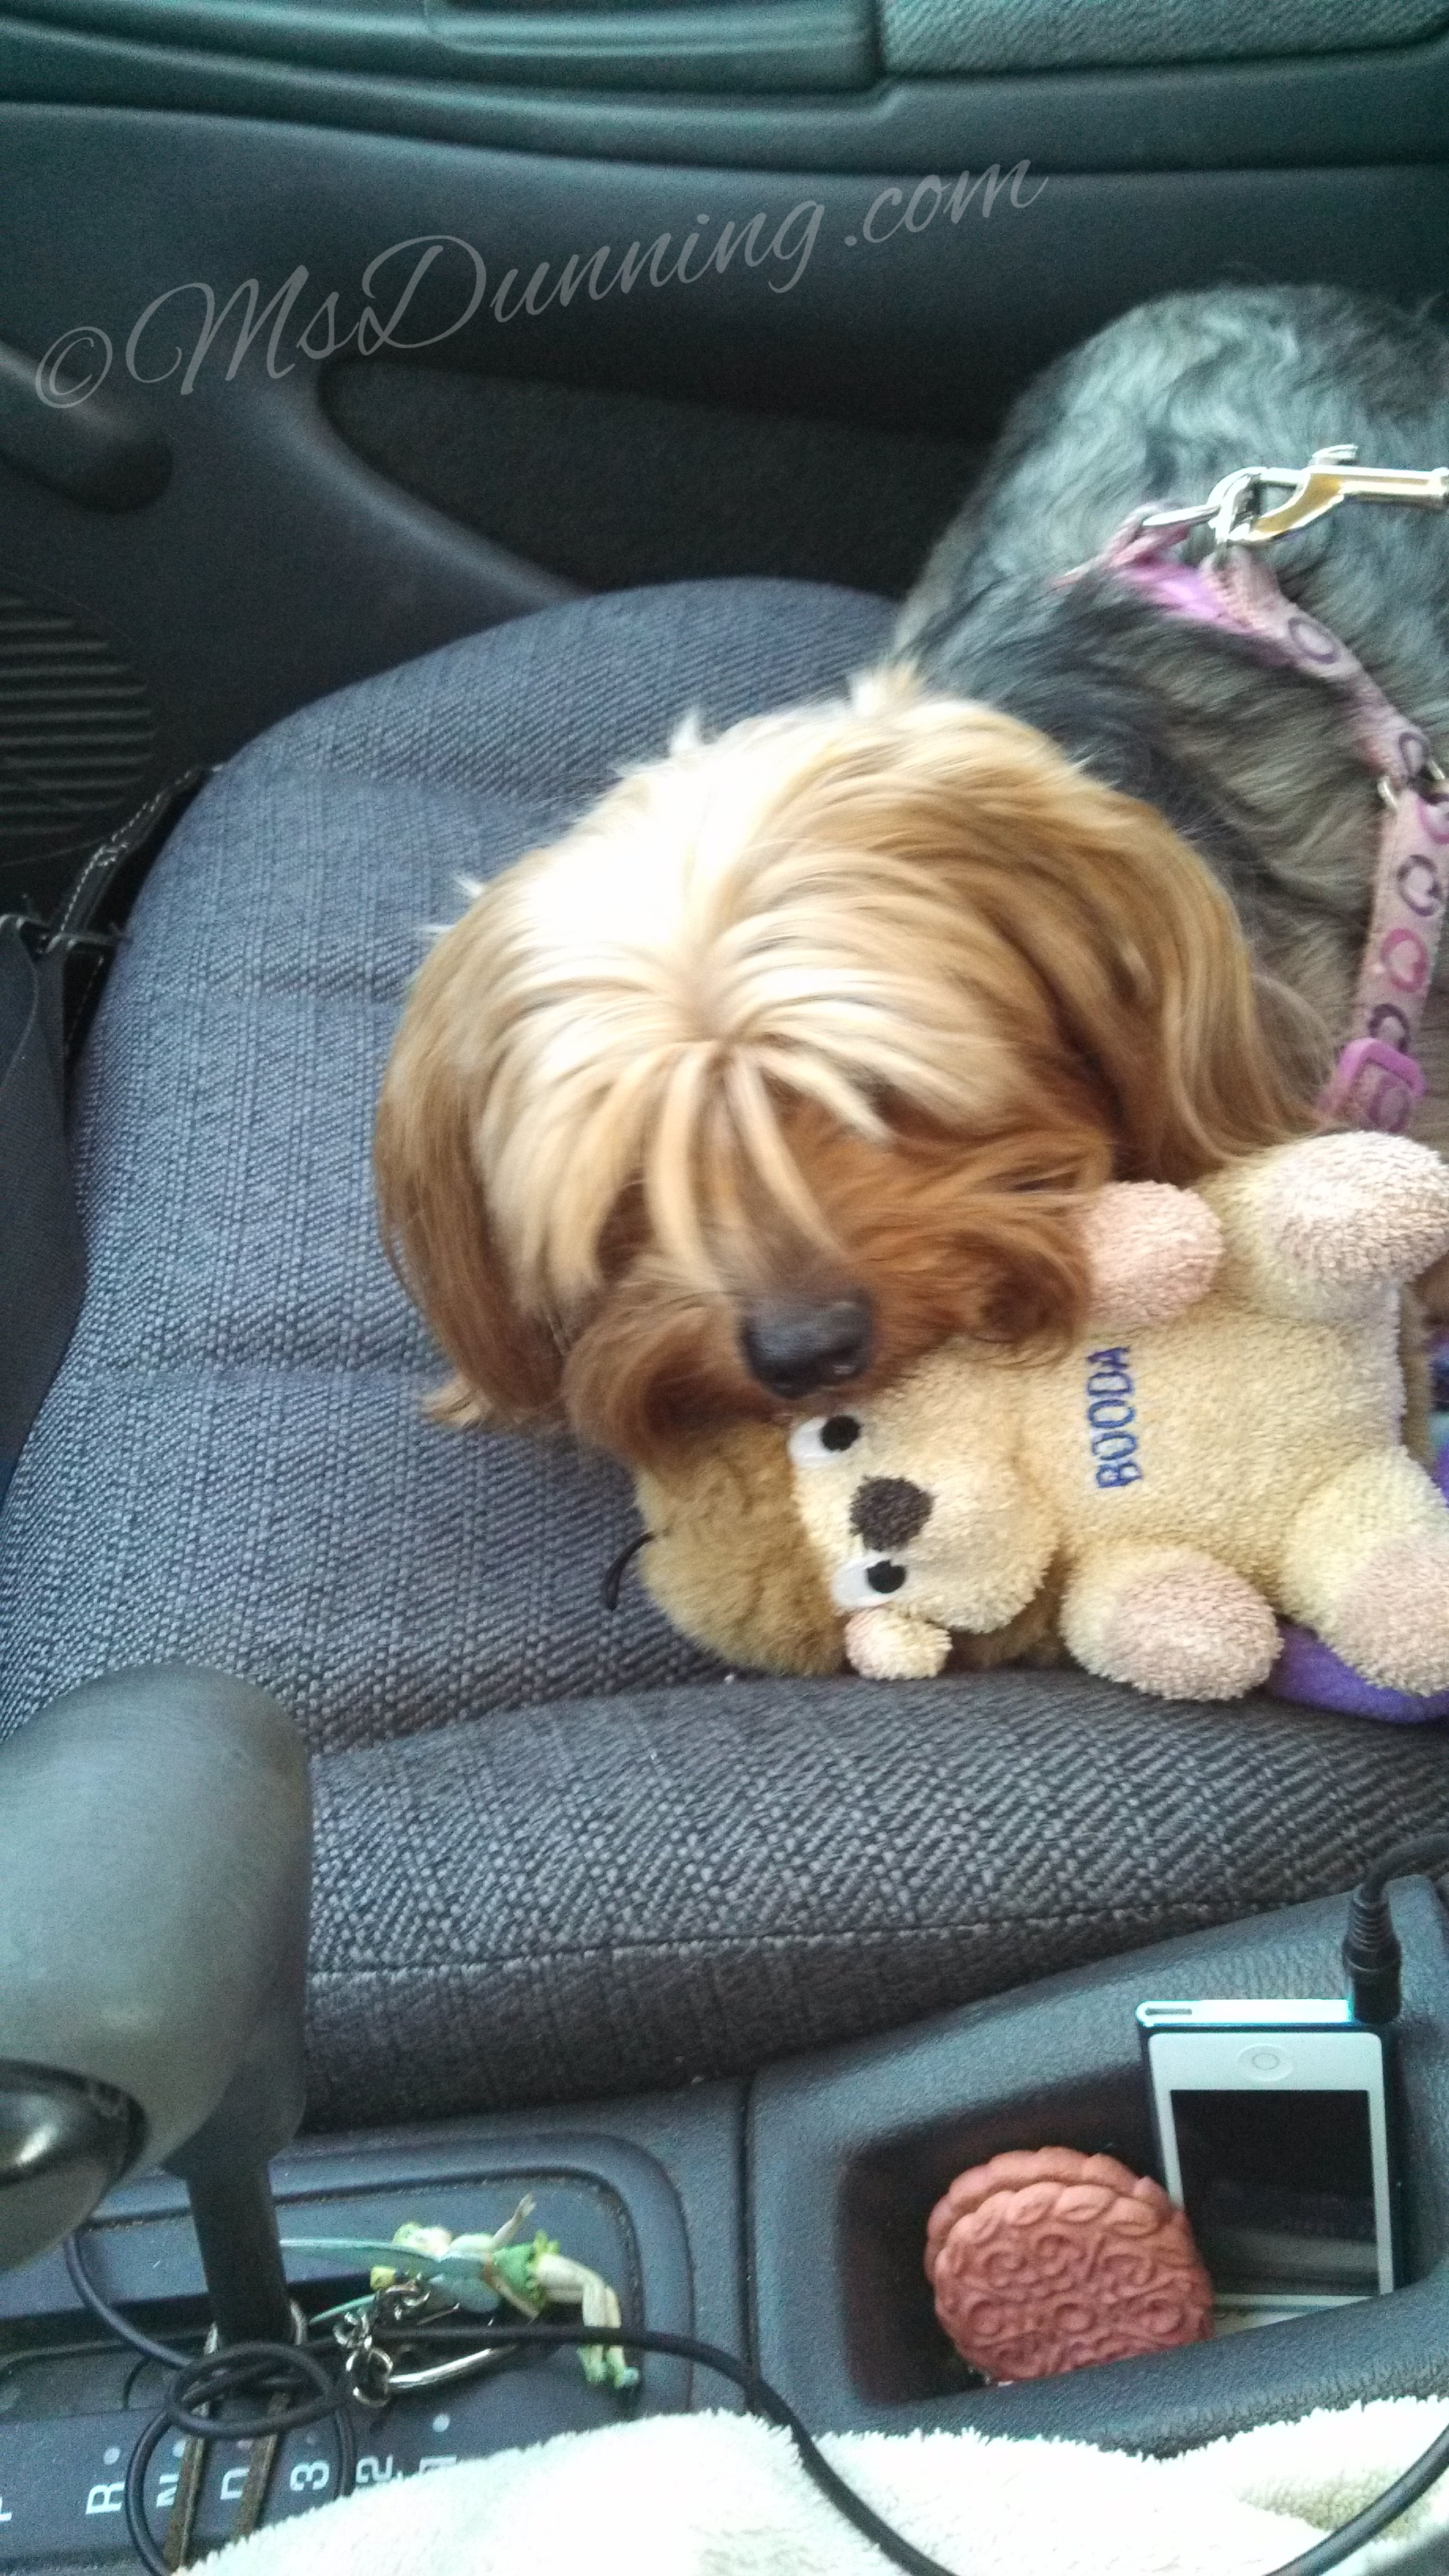 Tink in the car